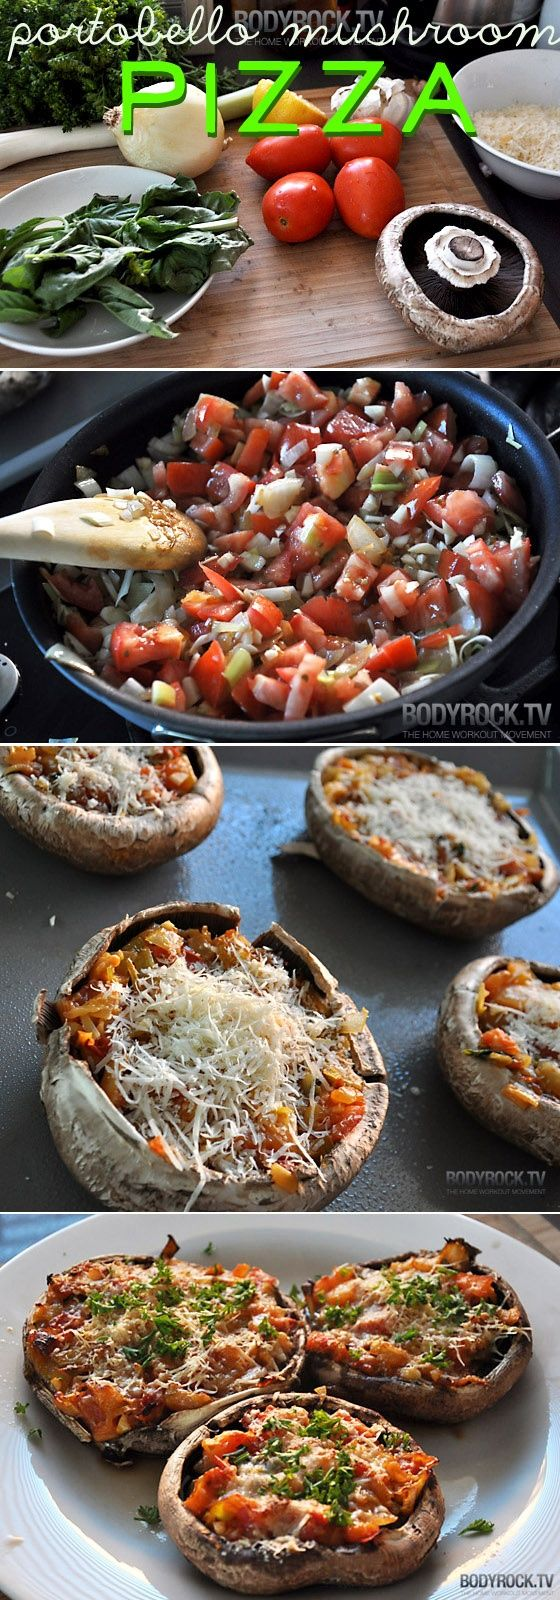 No crust needed: Portobello mushroom pizza.